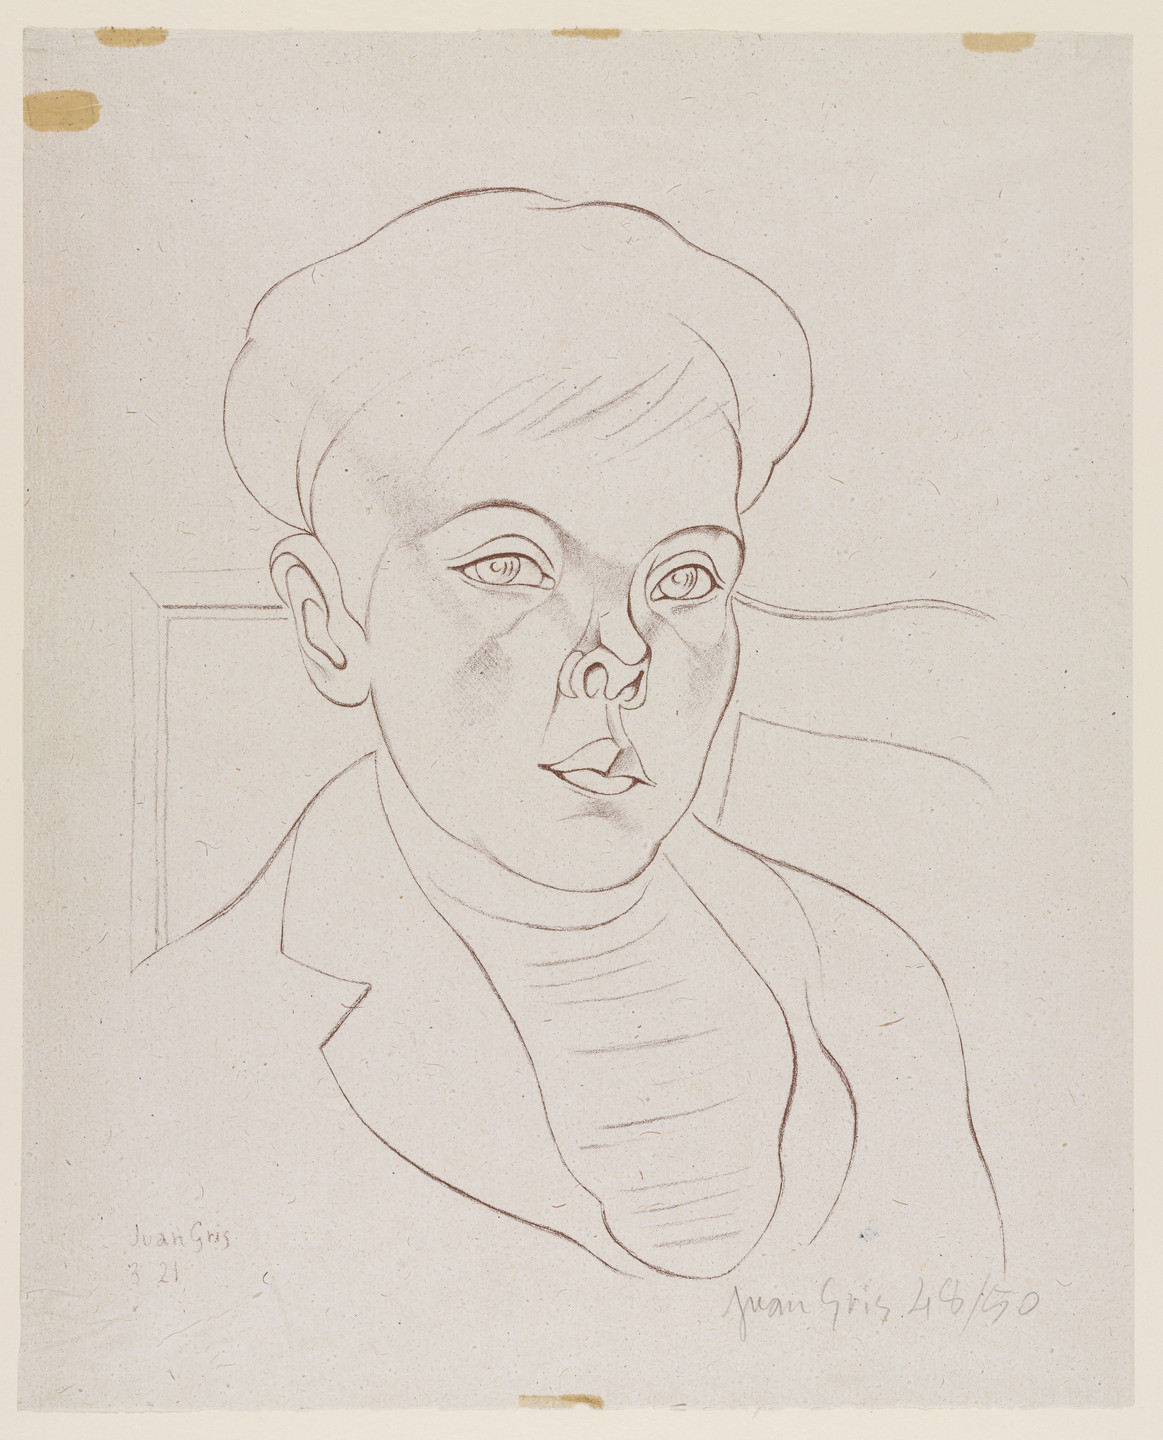 Juan Gris. Portrait of a Boy. (March 1921)